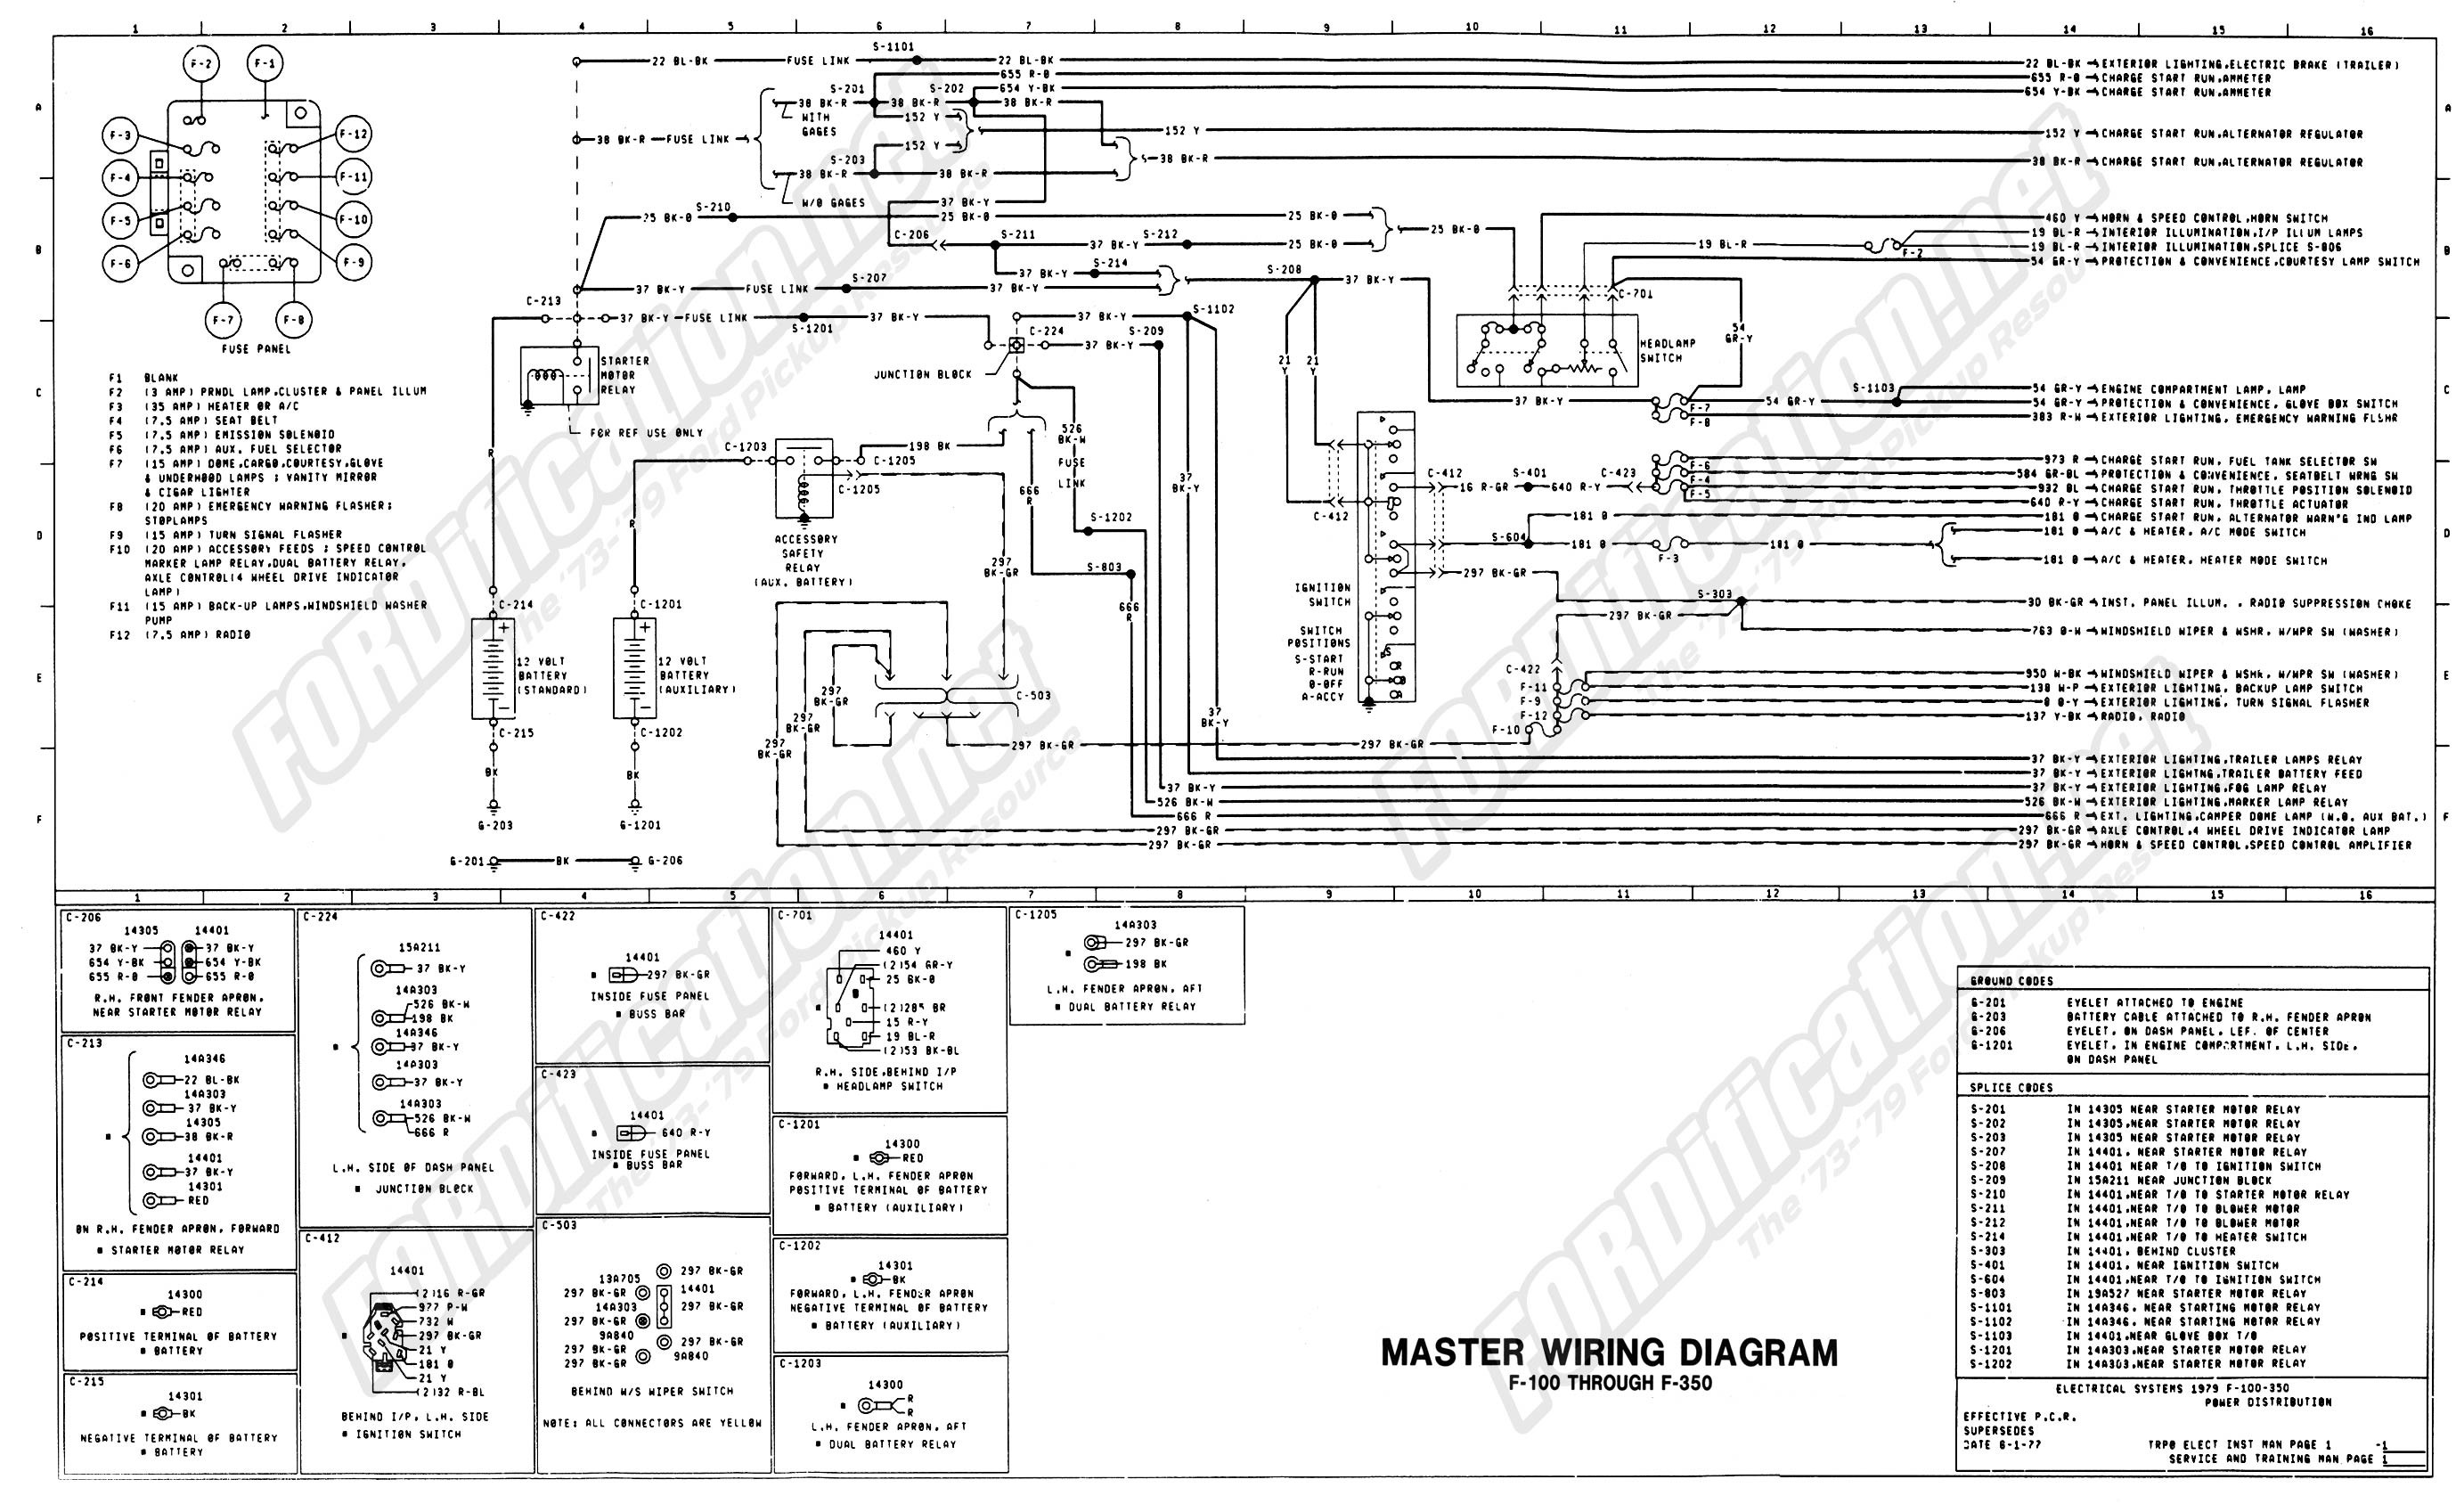 Ford Taurus Fuse Diagram